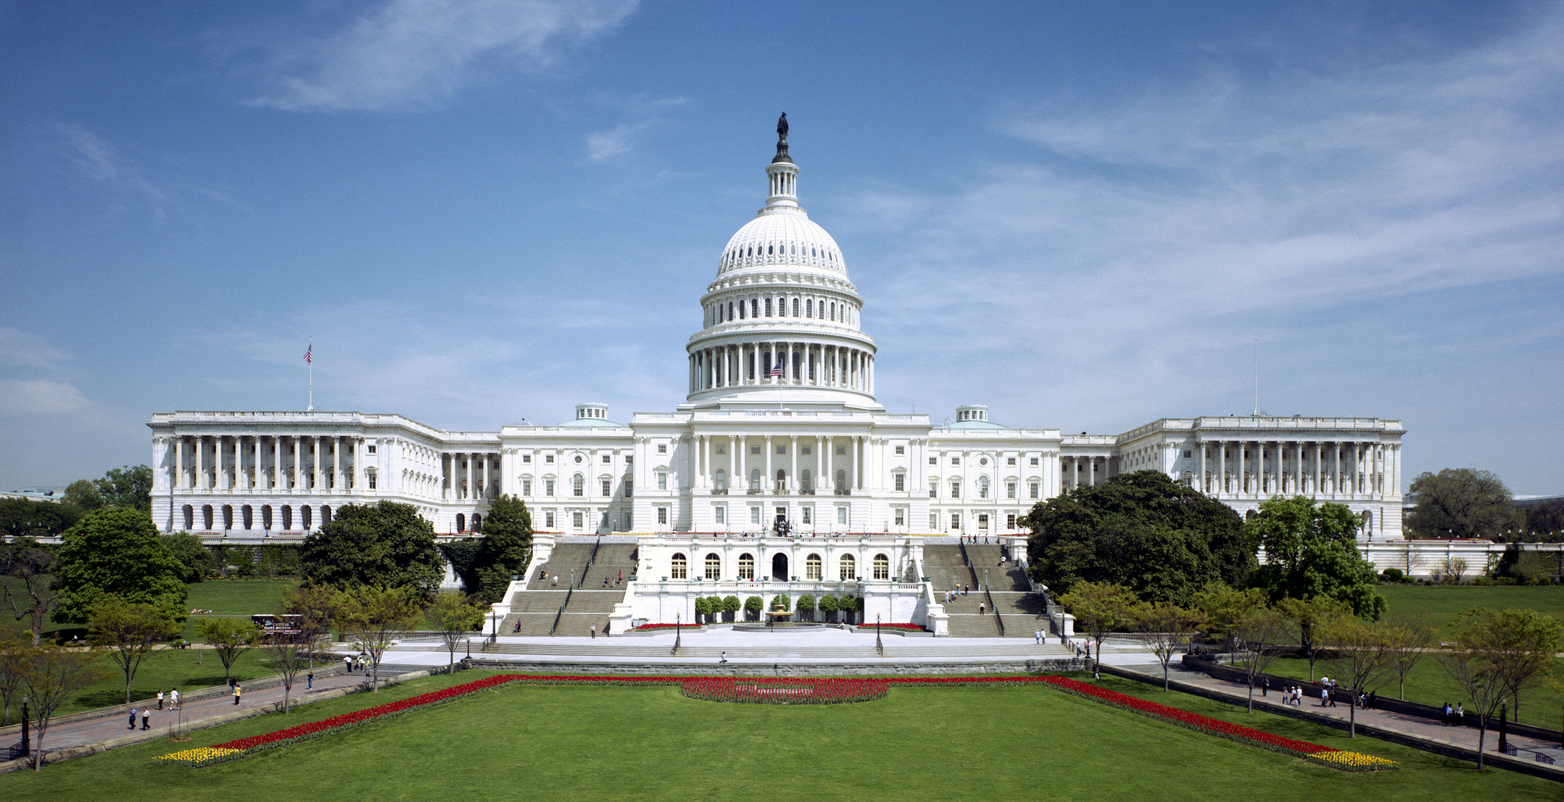 H.R.5635 - Virtual Currency Tax Fairness Act of 2020 ($200.00 Limit) 116th Congress (2019-2020)